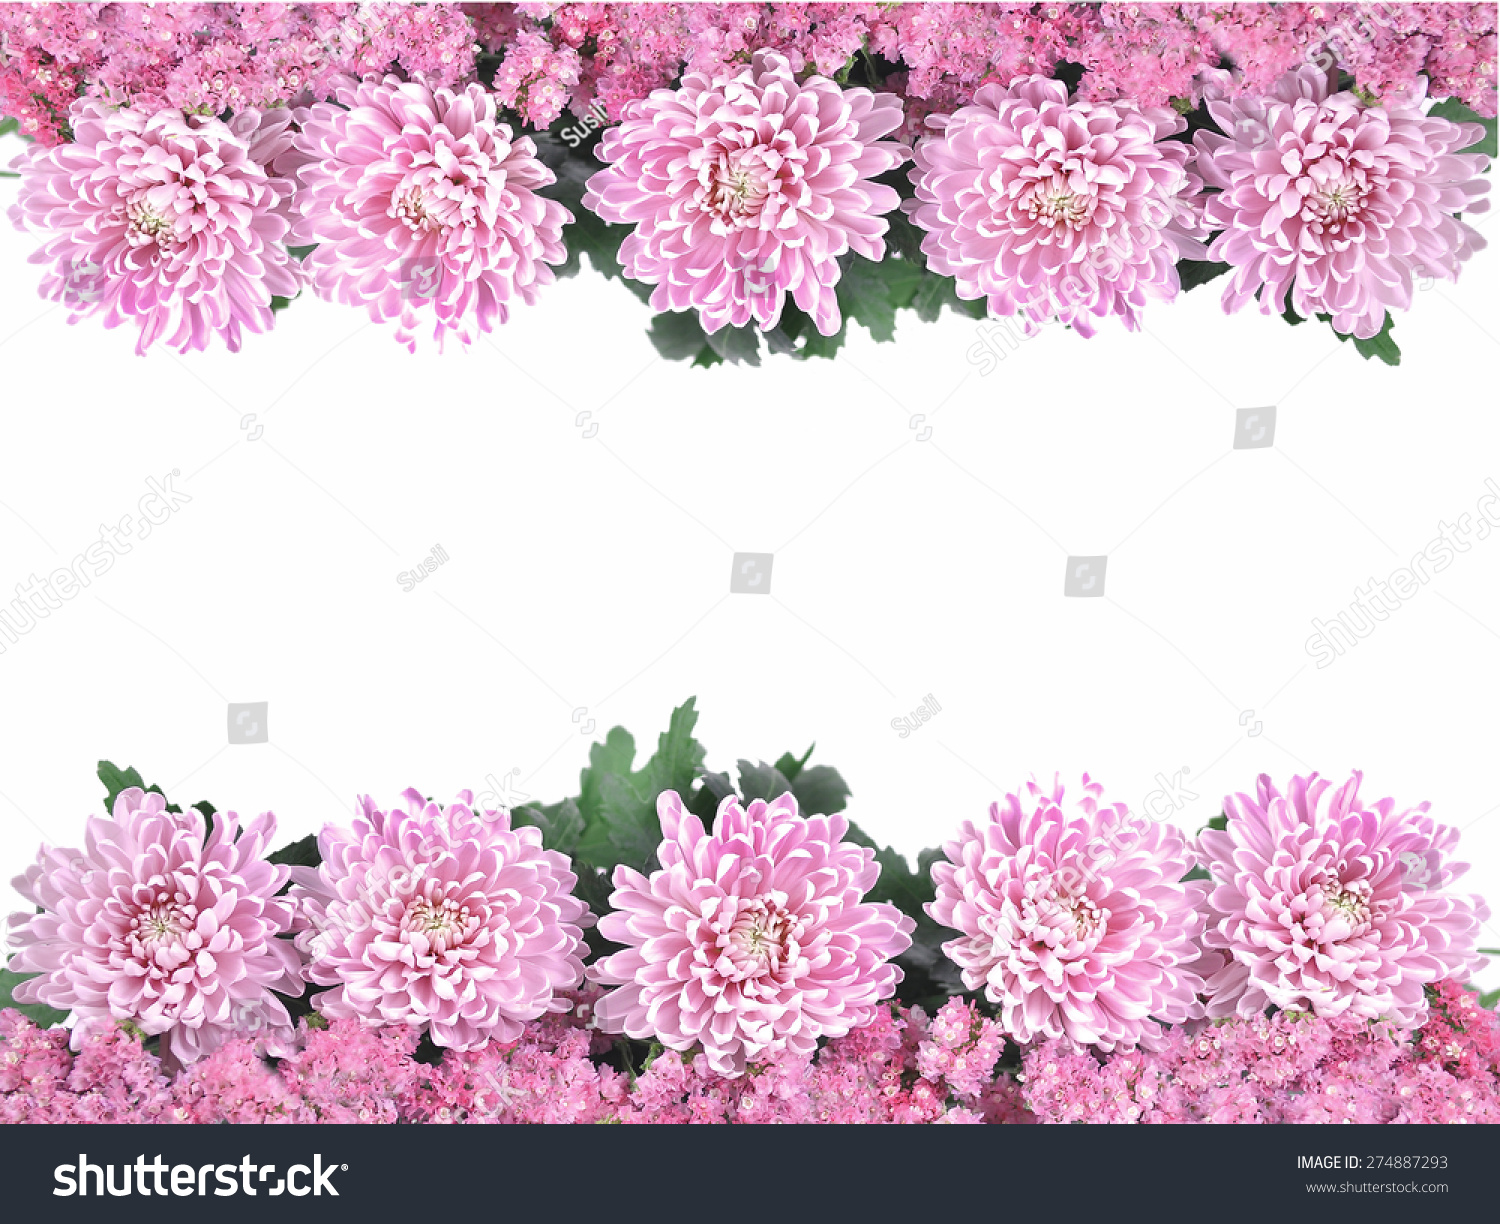 Pretty Frame Border Pink Spring Summer Stock Photo (Royalty Free ...